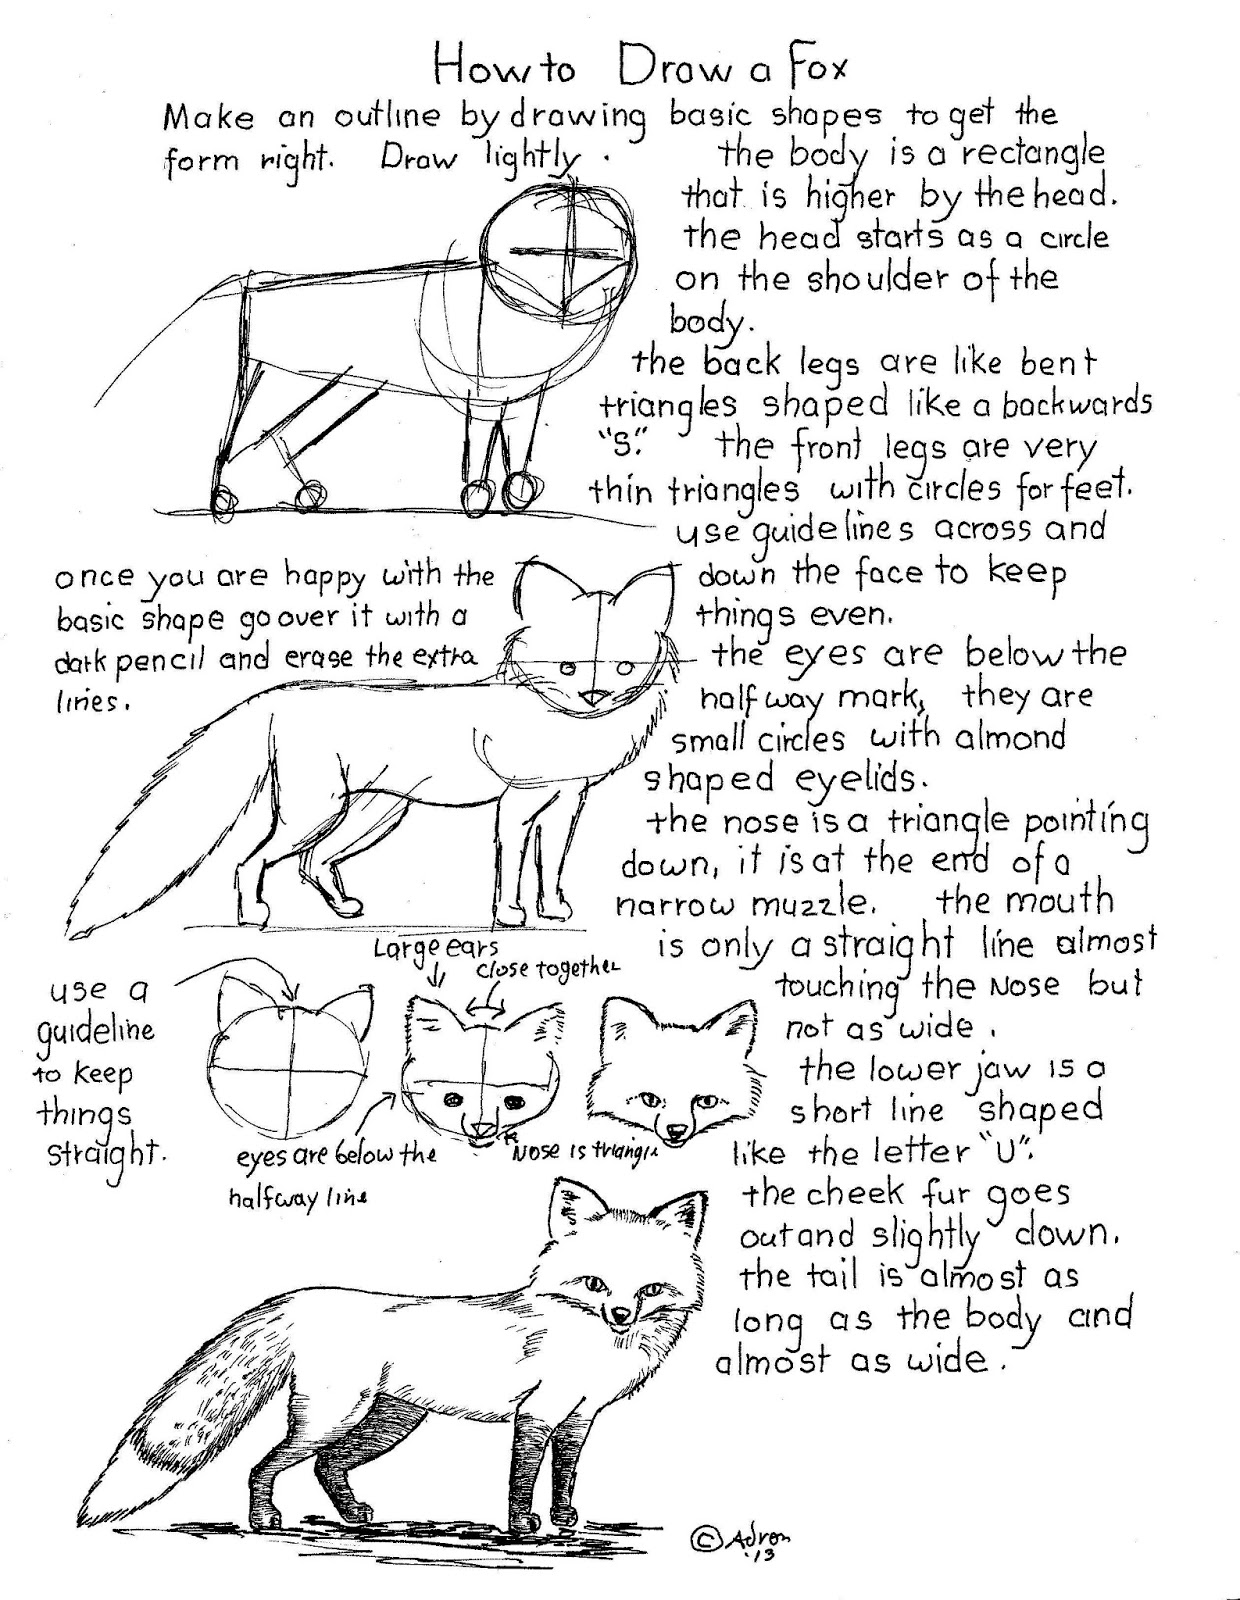 worksheet How To Draw Worksheets how to draw worksheets for the young artist a fox worksheet worksheet